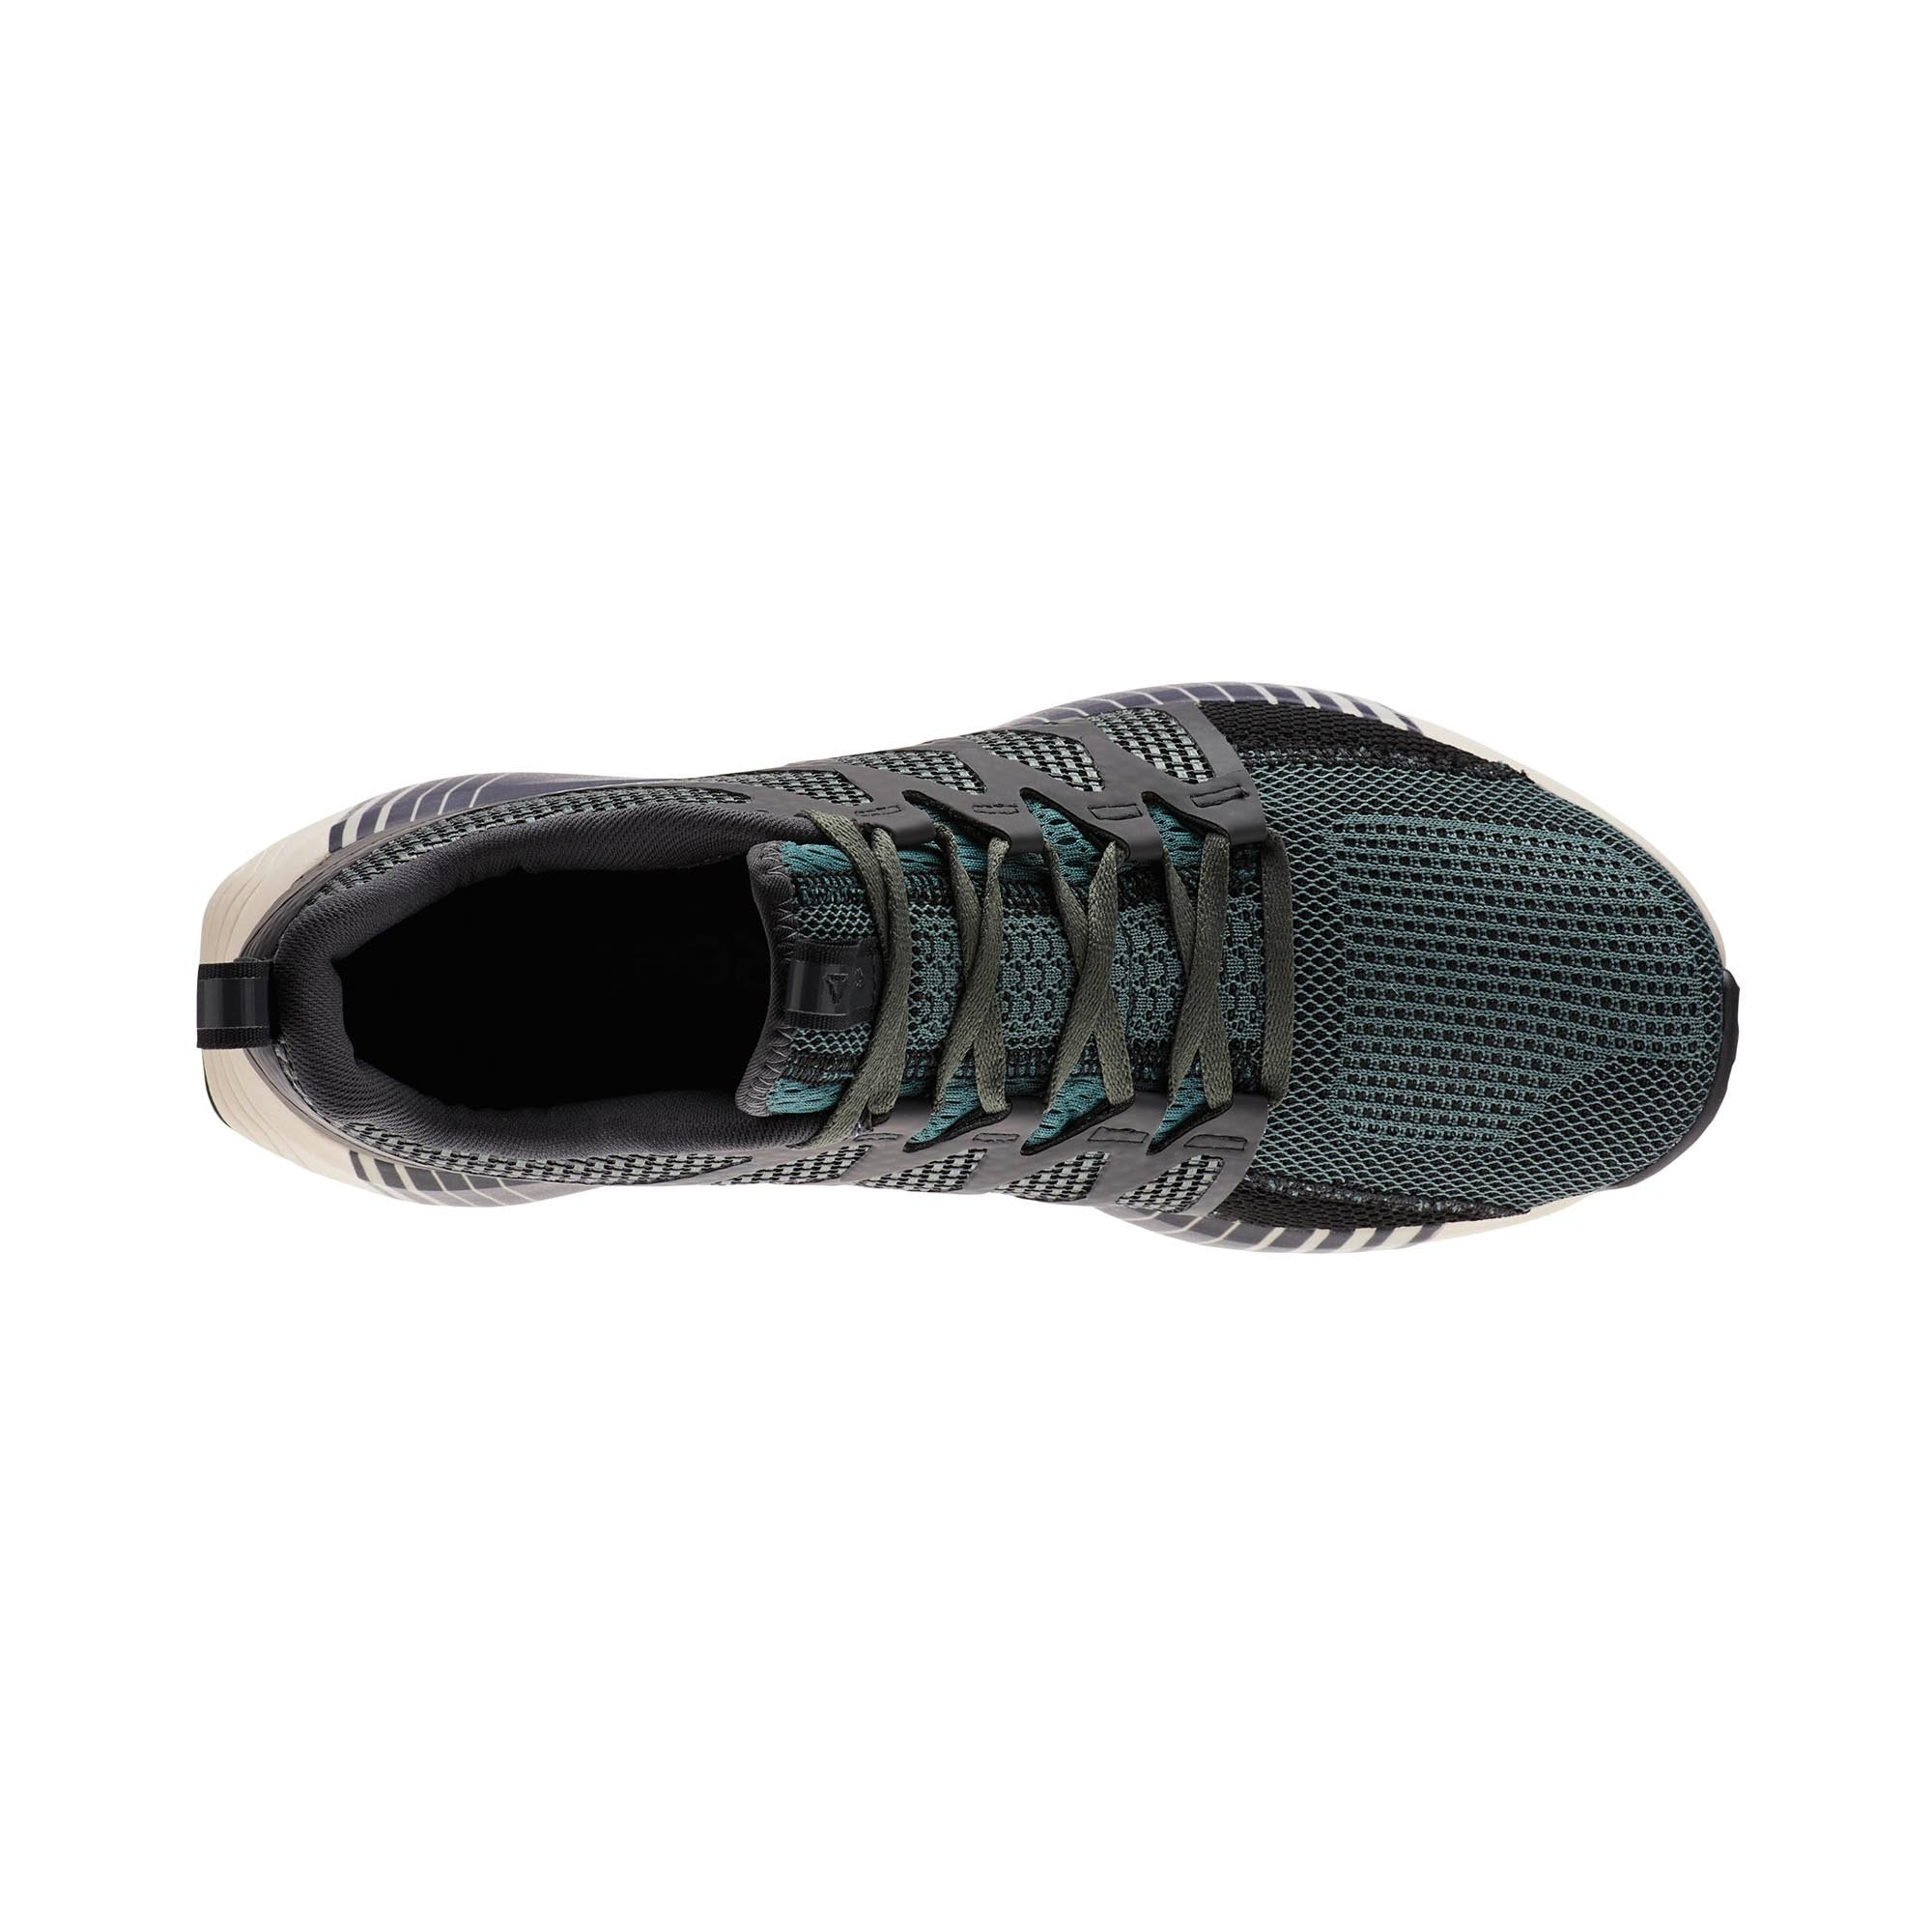 Buy Reebok Fusion Flexweave Cage Running Shoes a96d6544a